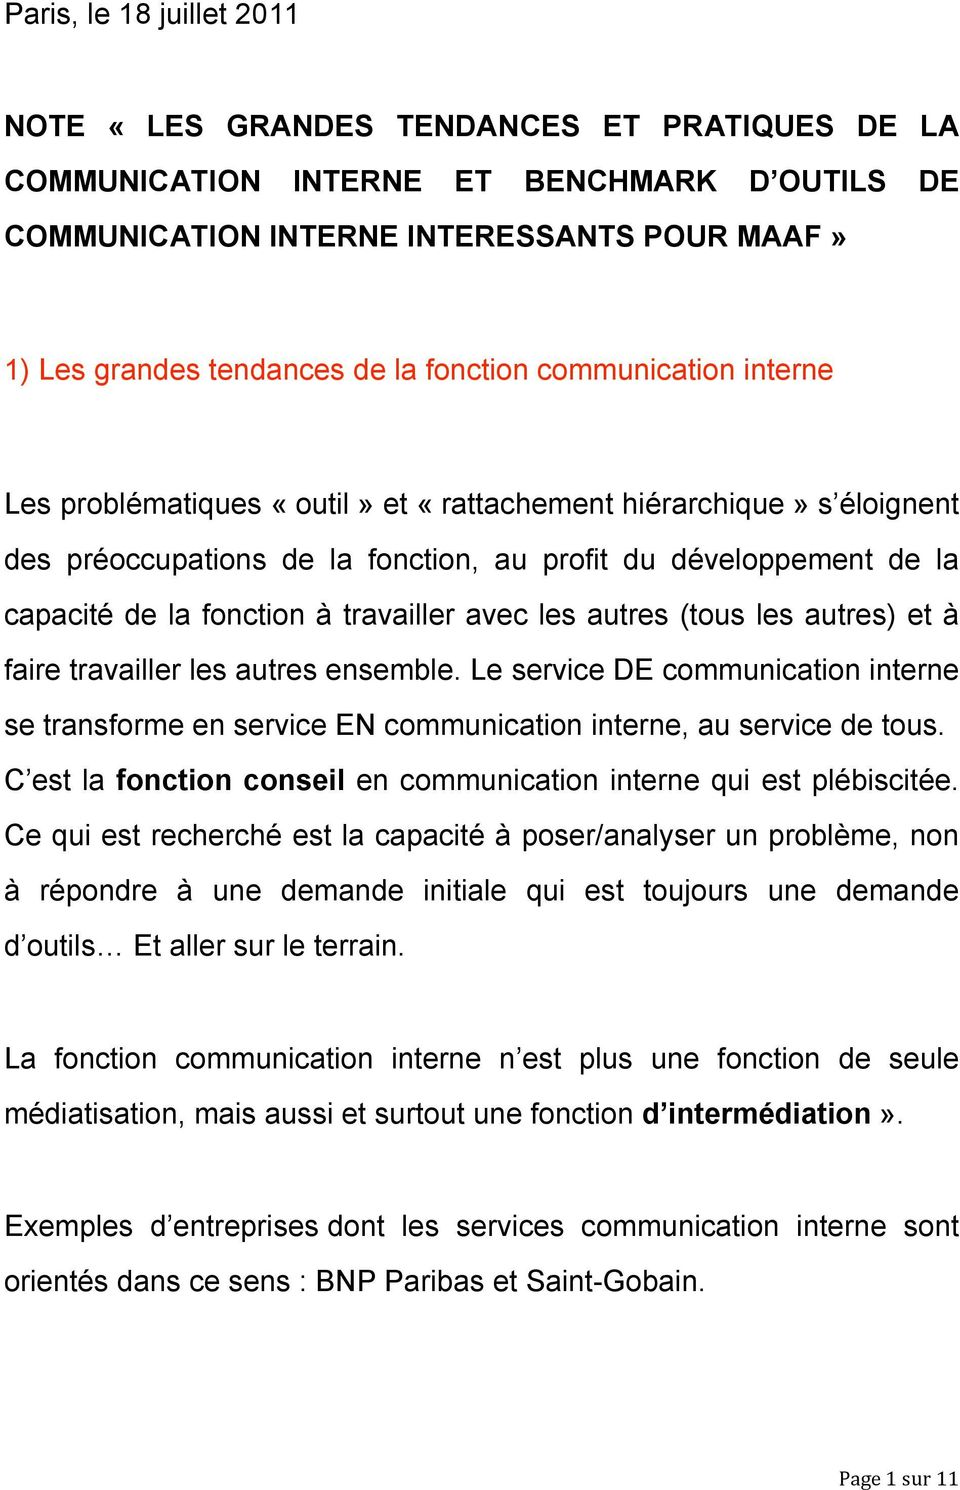 travailler avec les autres (tous les autres) et à faire travailler les autres ensemble. Le service DE communication interne se transforme en service EN communication interne, au service de tous.